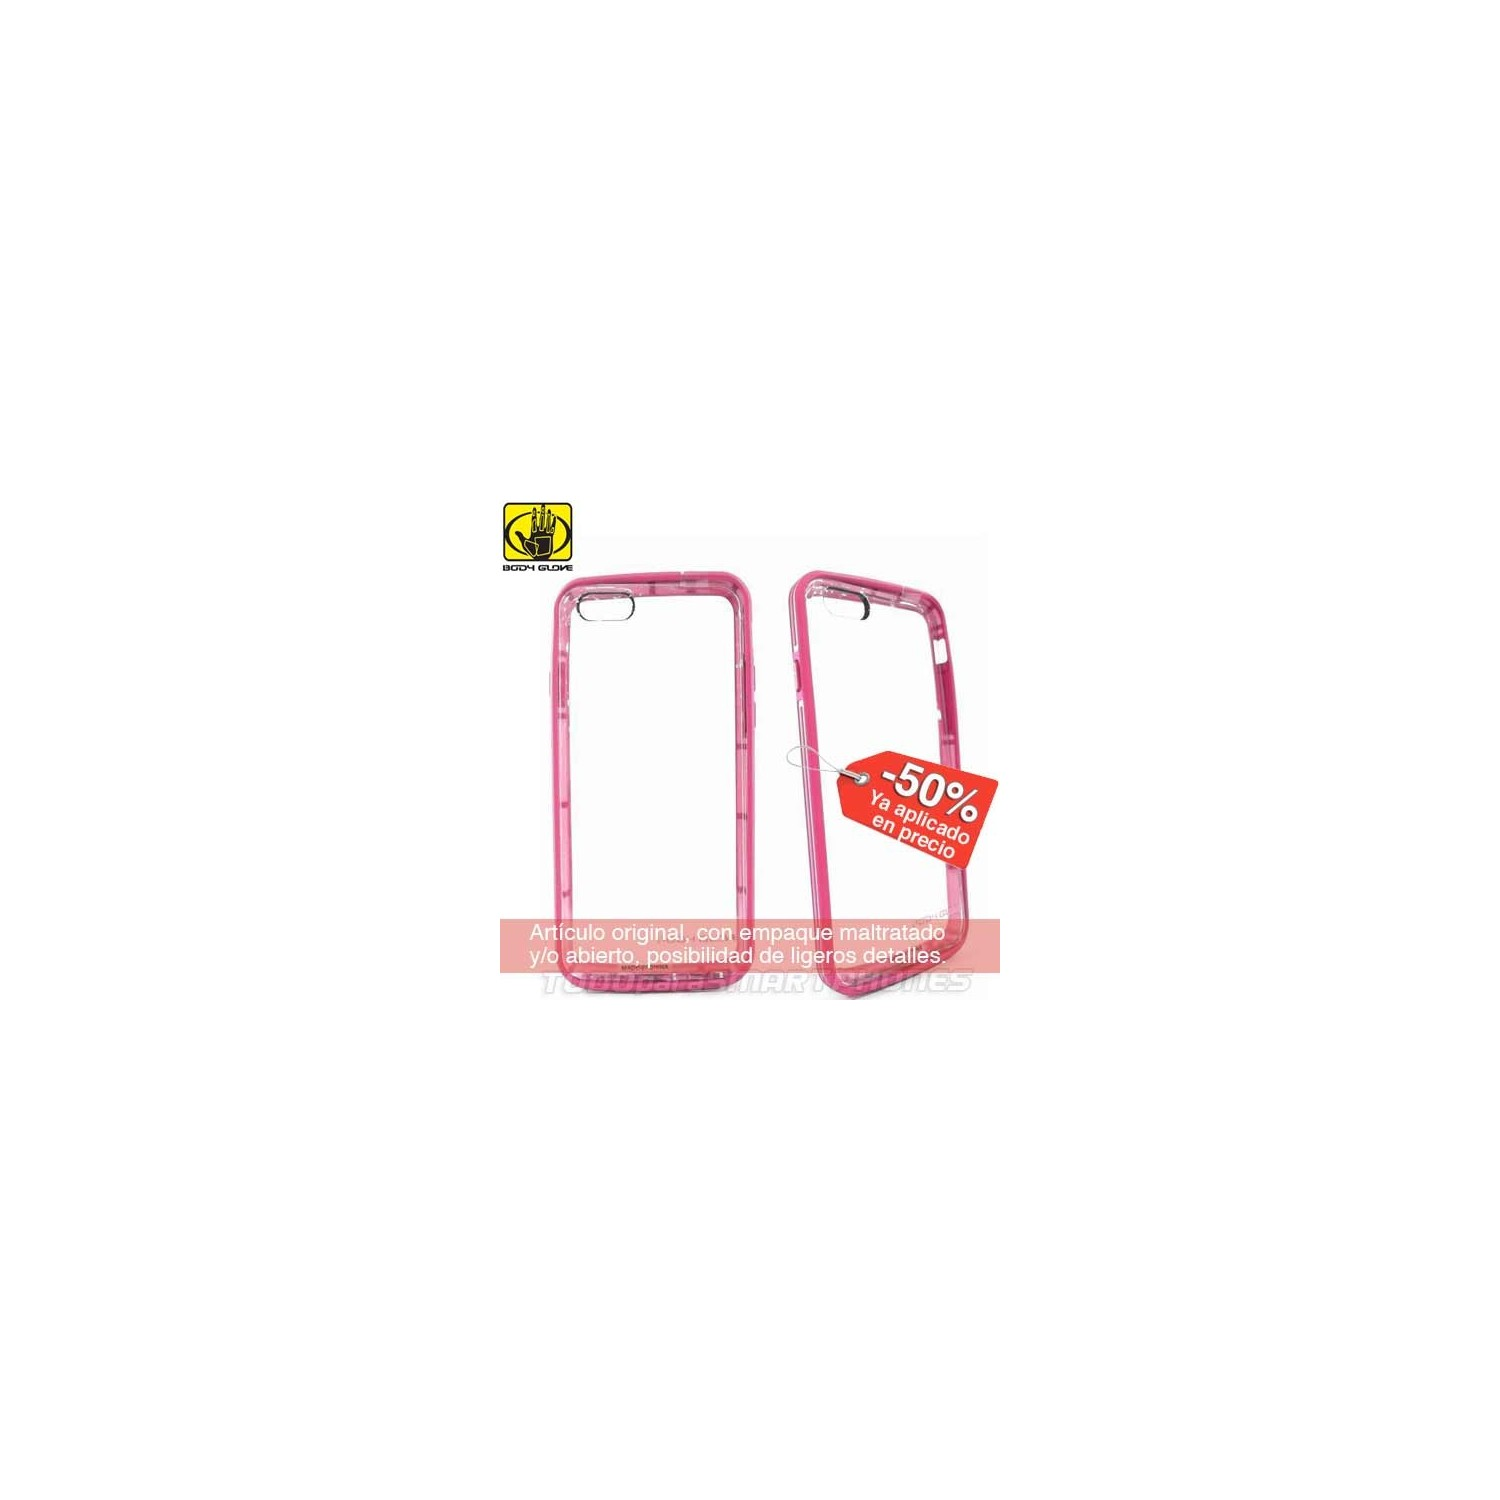 Case - Body Glove for iPhone 6 MySuit Clear Pink